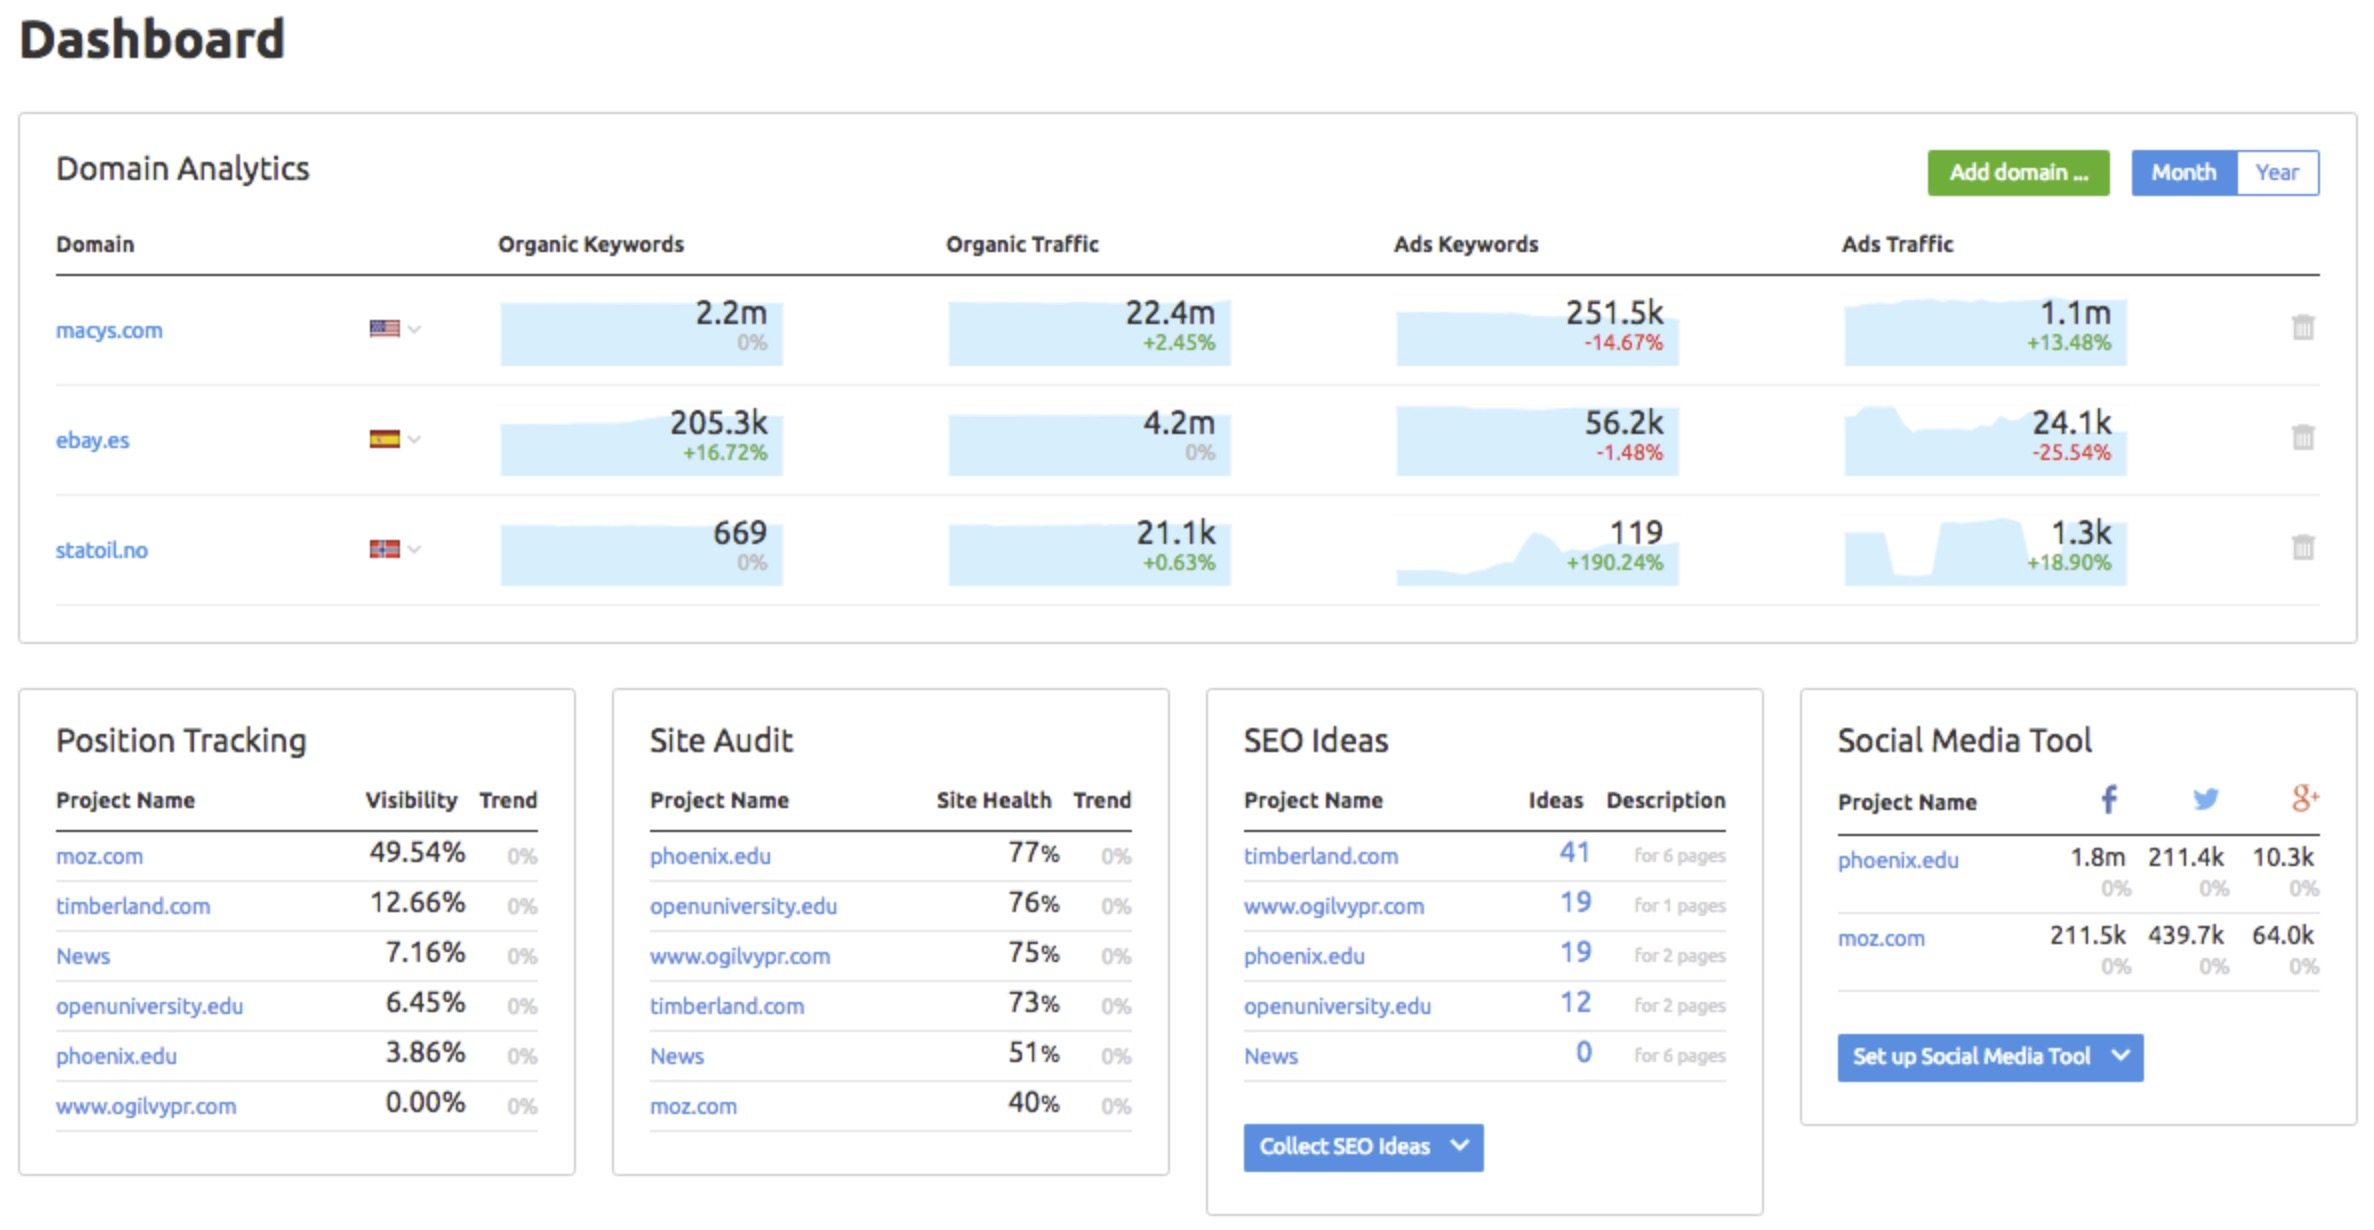 semrush dashboard snapshot wide